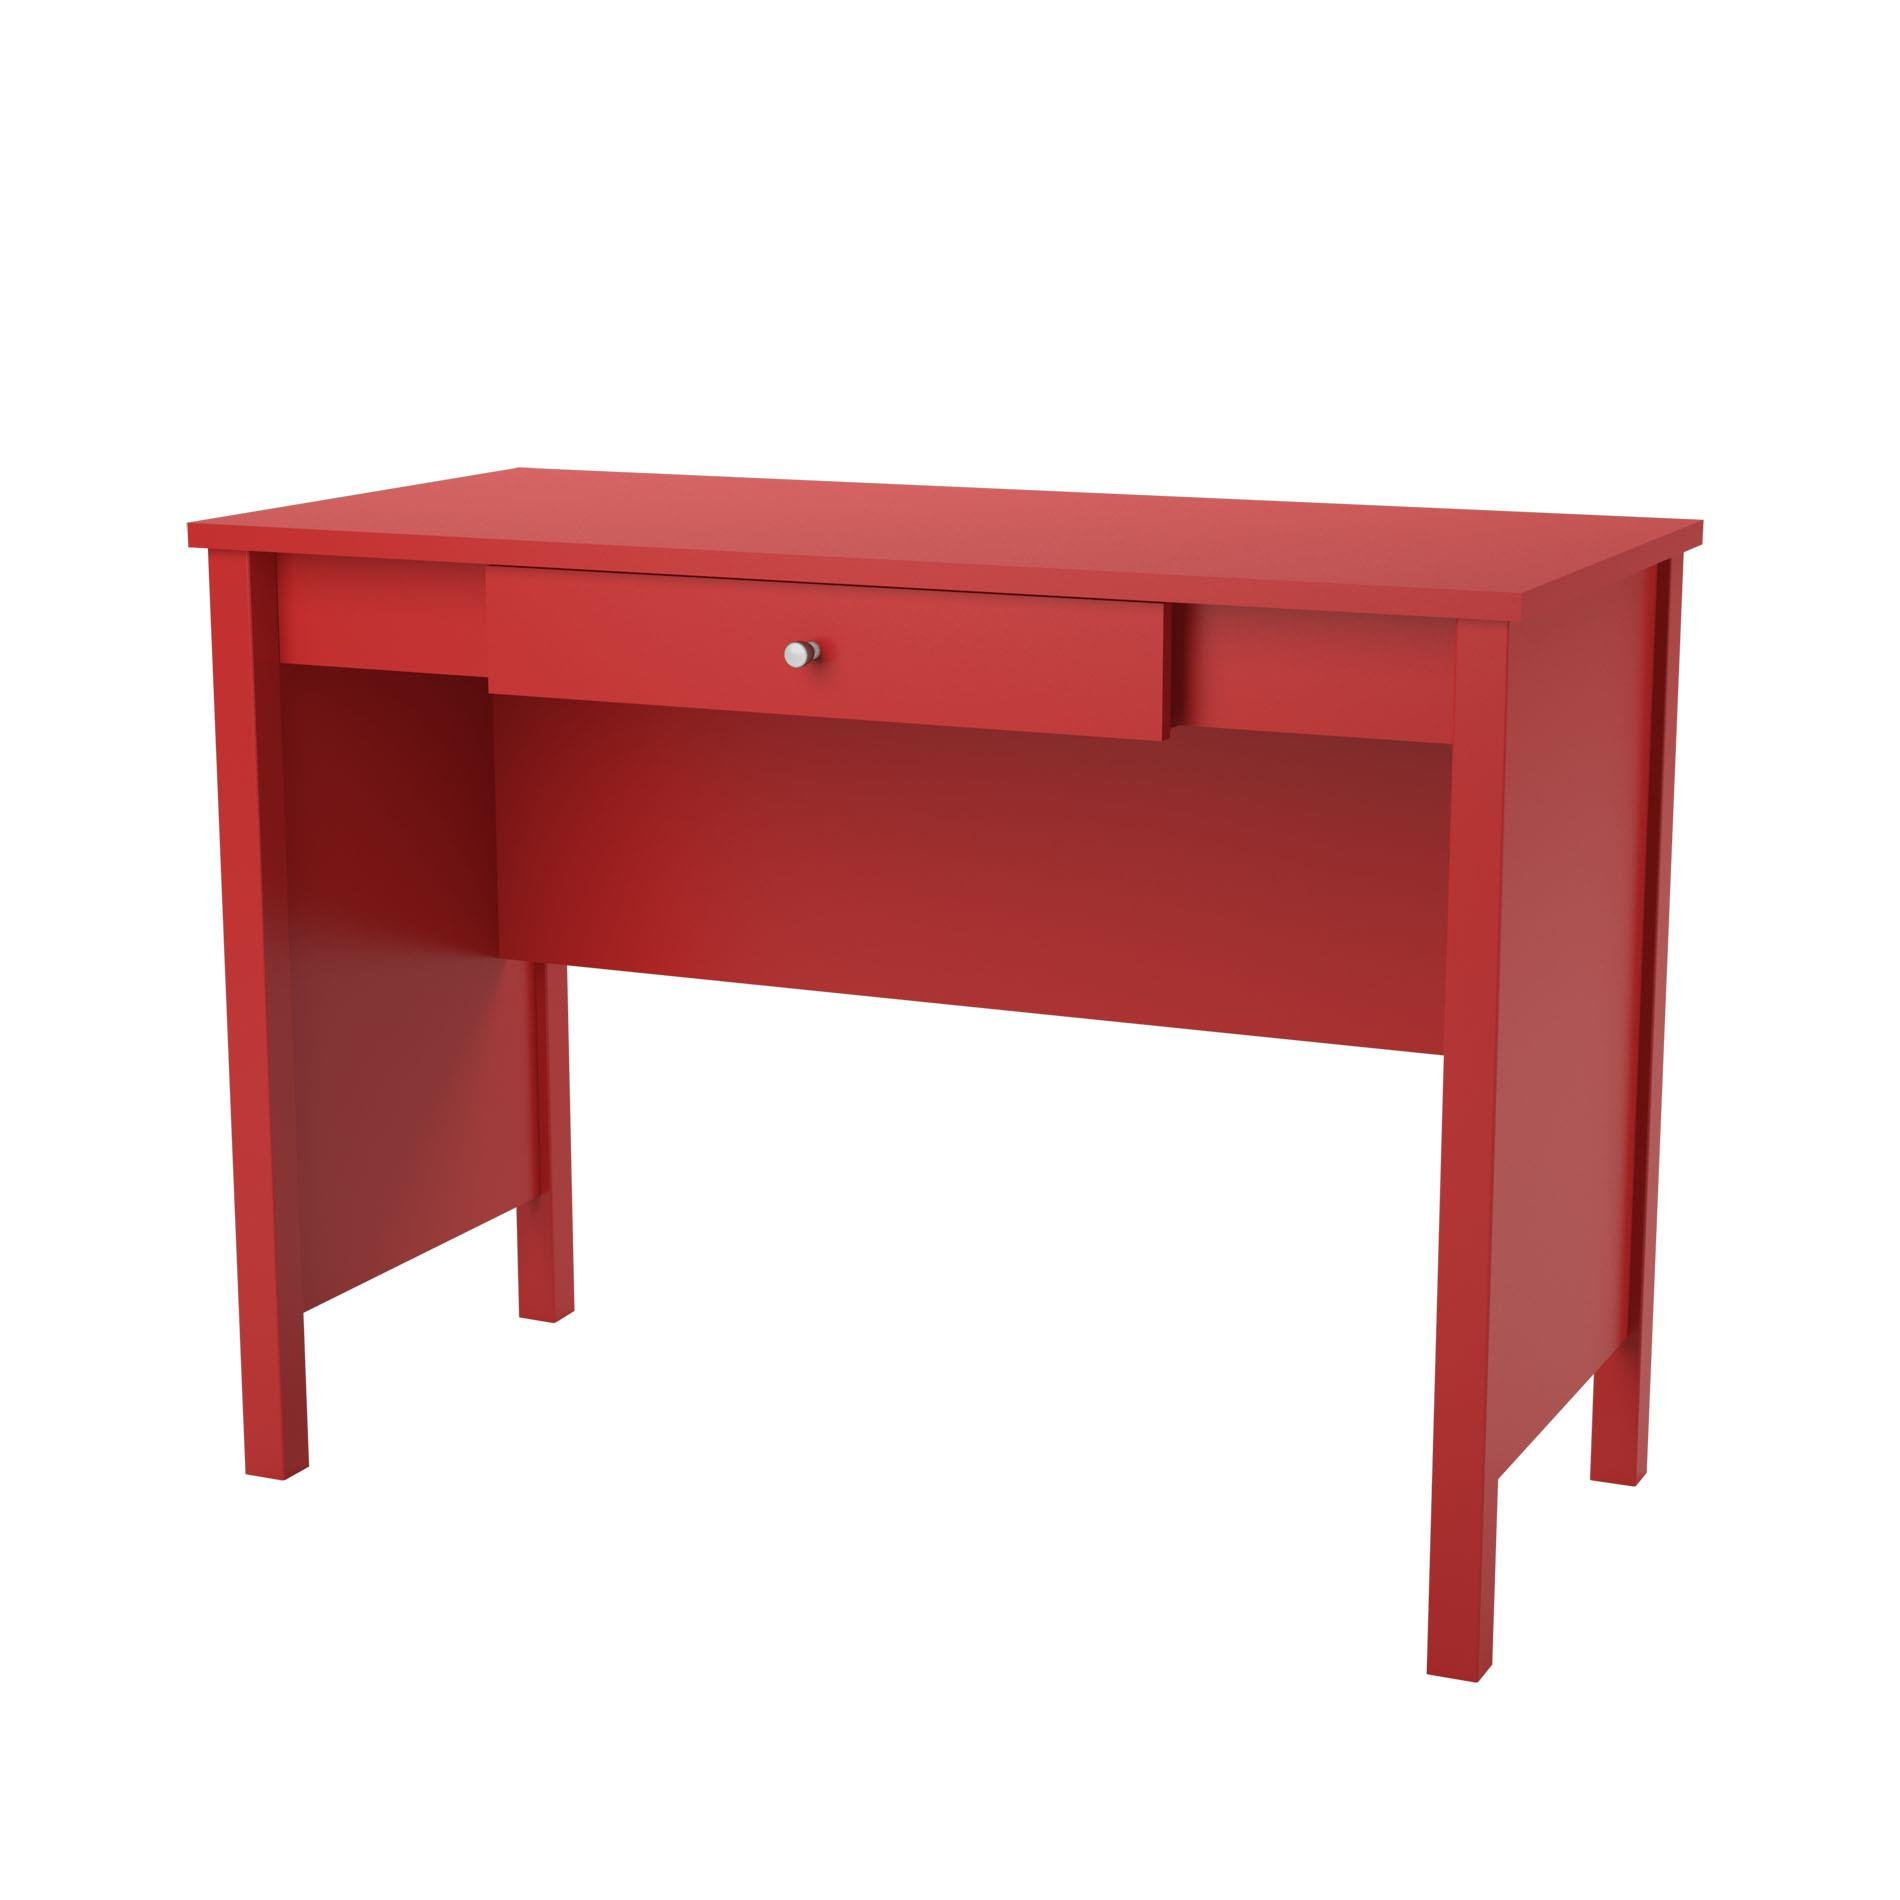 Altra Carrington Desk, Ruby Red - Color: Ruby Red